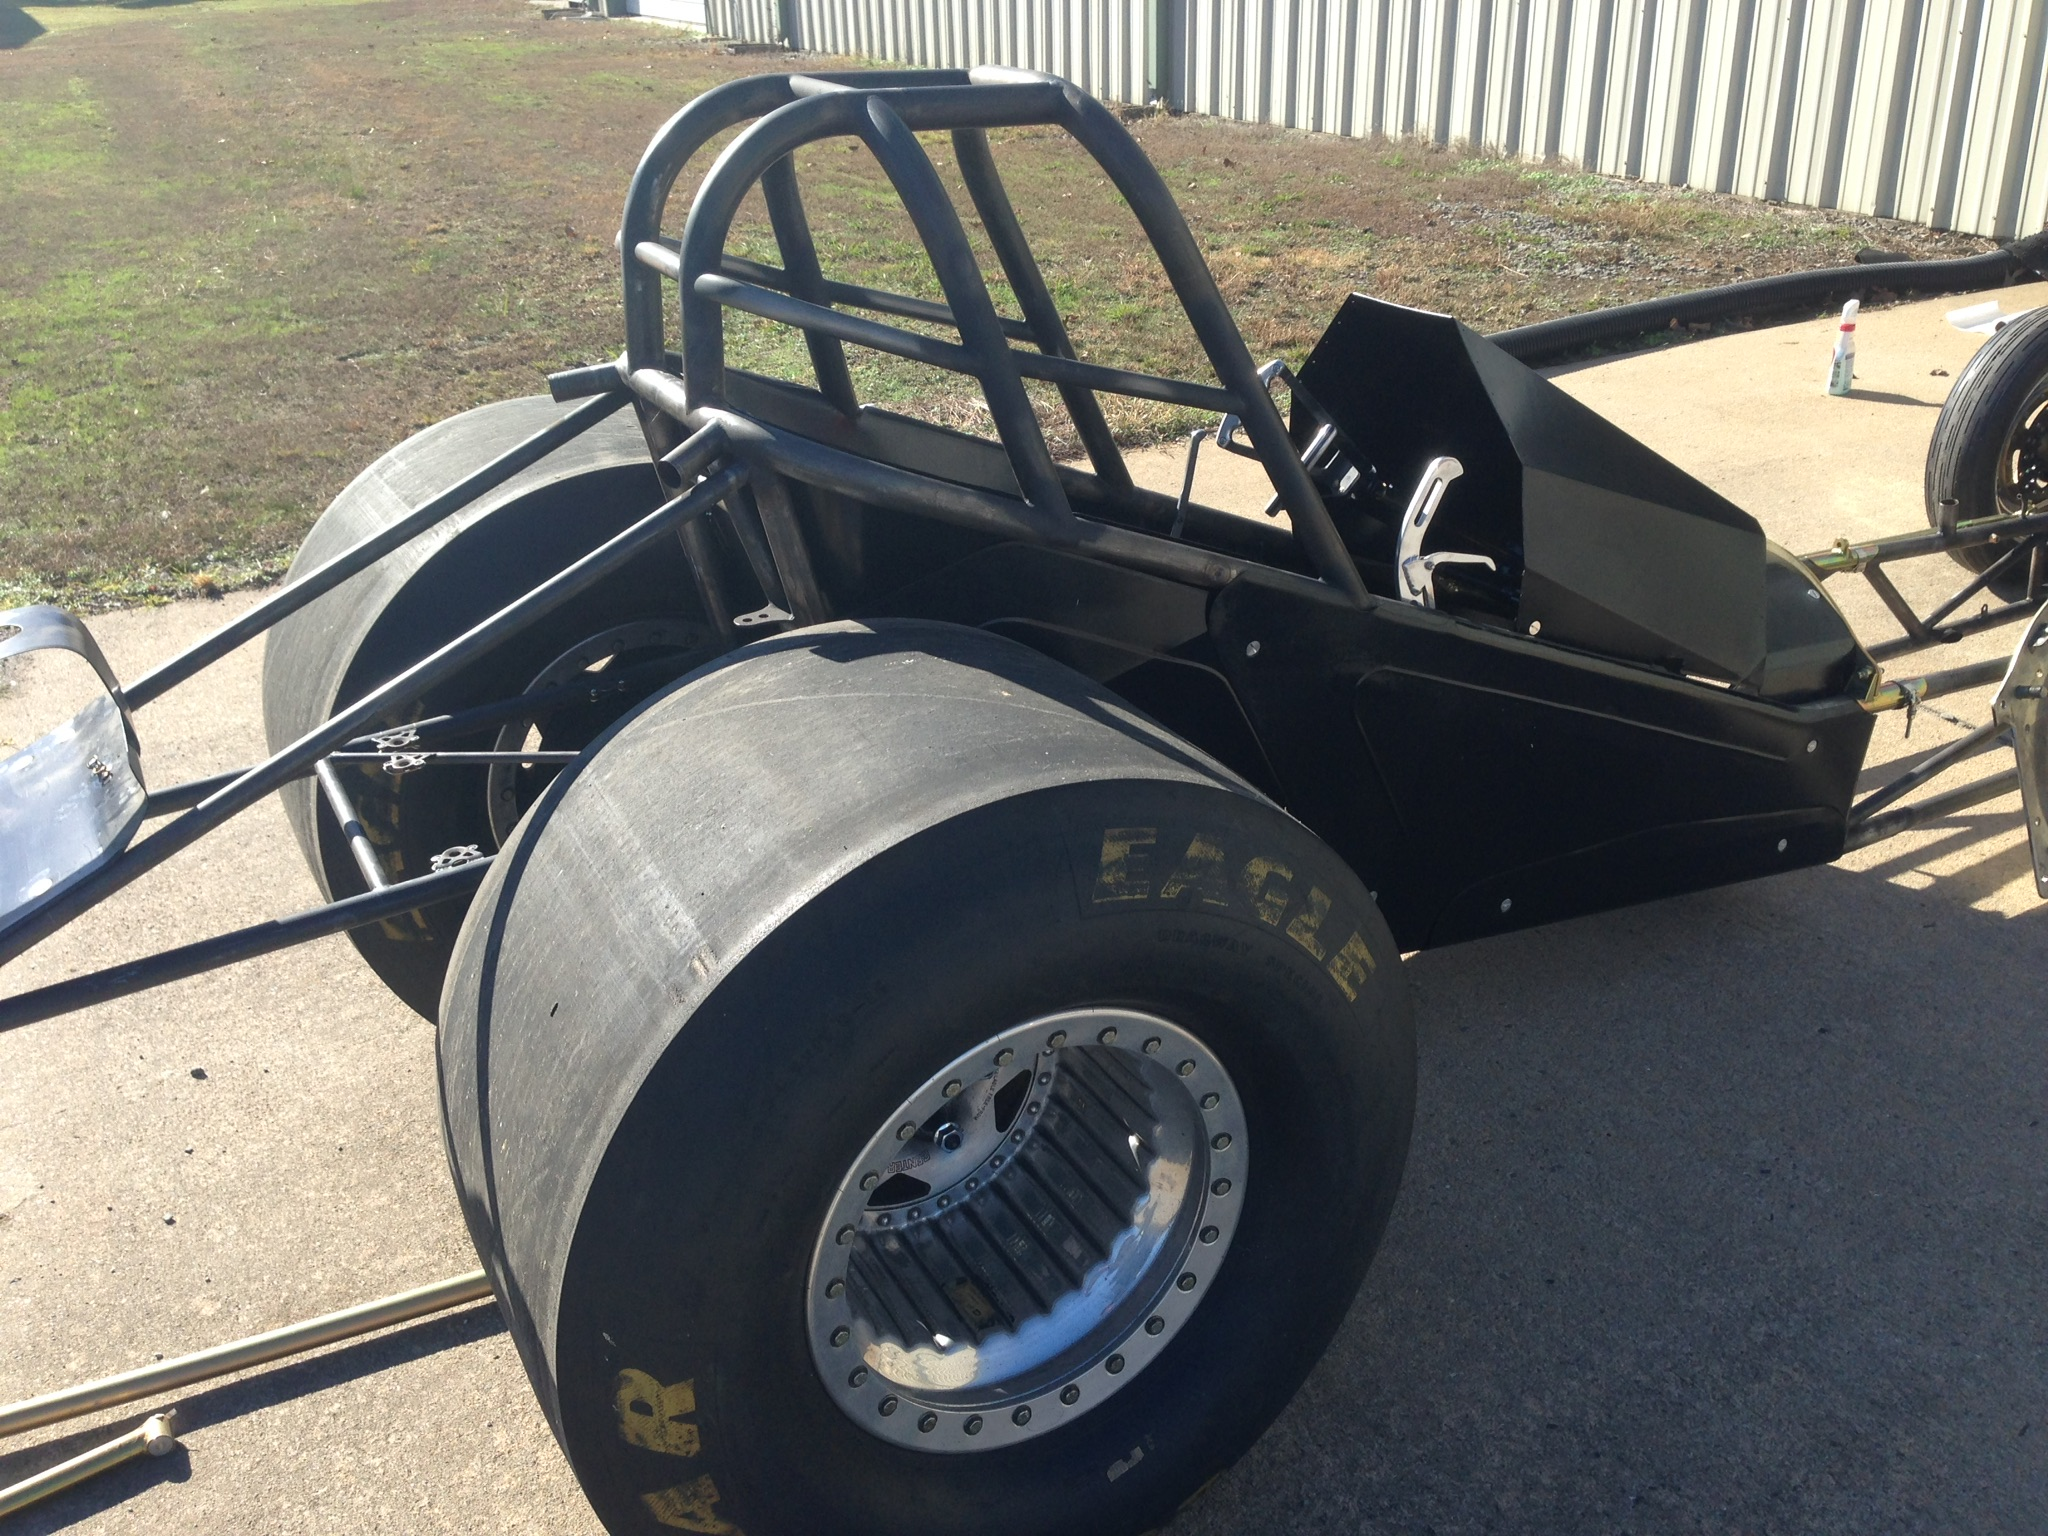 Funny/Fuel Altered Car Chassis | Wizard's Warehouse